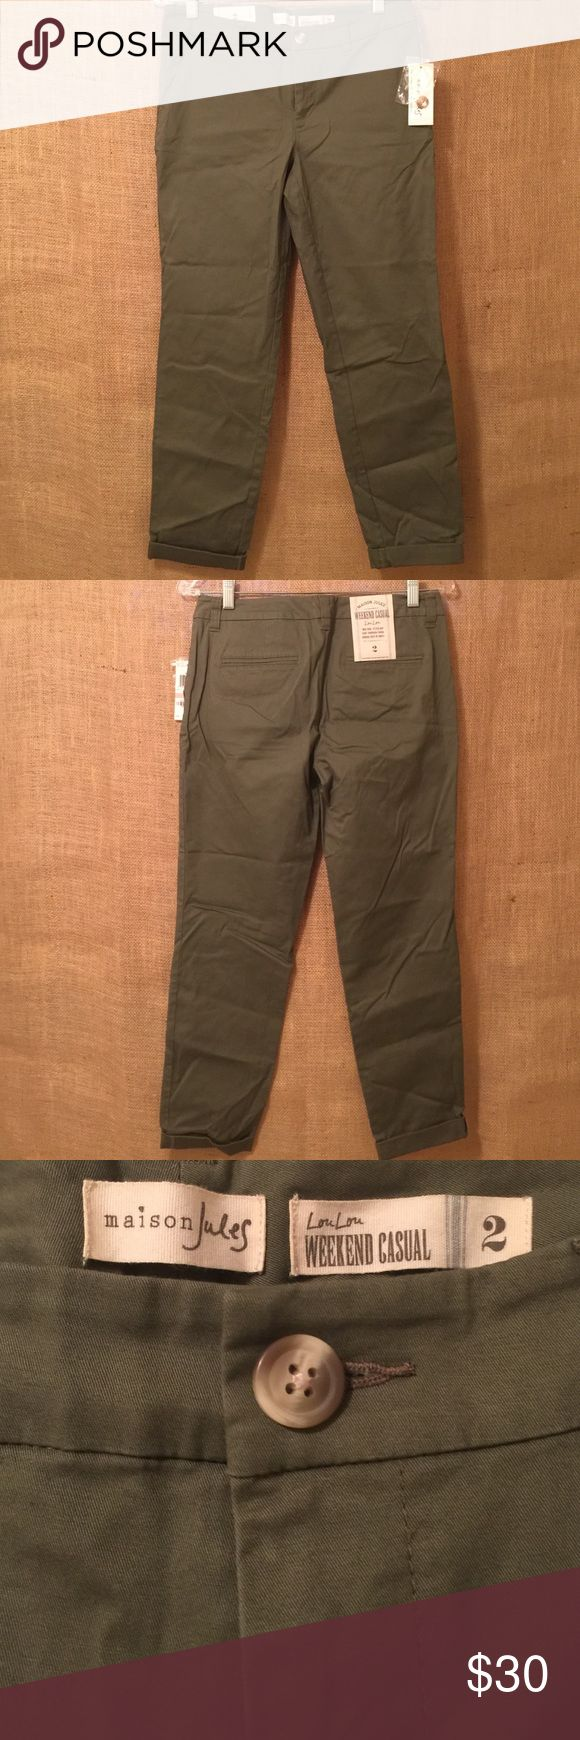 NWT Maison Jules Olive Ankle Pants NWT olive green rolled-cuff ankle pants. Mid-rise, easy through thigh. Excellent, never worn condition - from a smoke and pet free home! Will consider all offers! Maison Jules Pants Ankle & Cropped